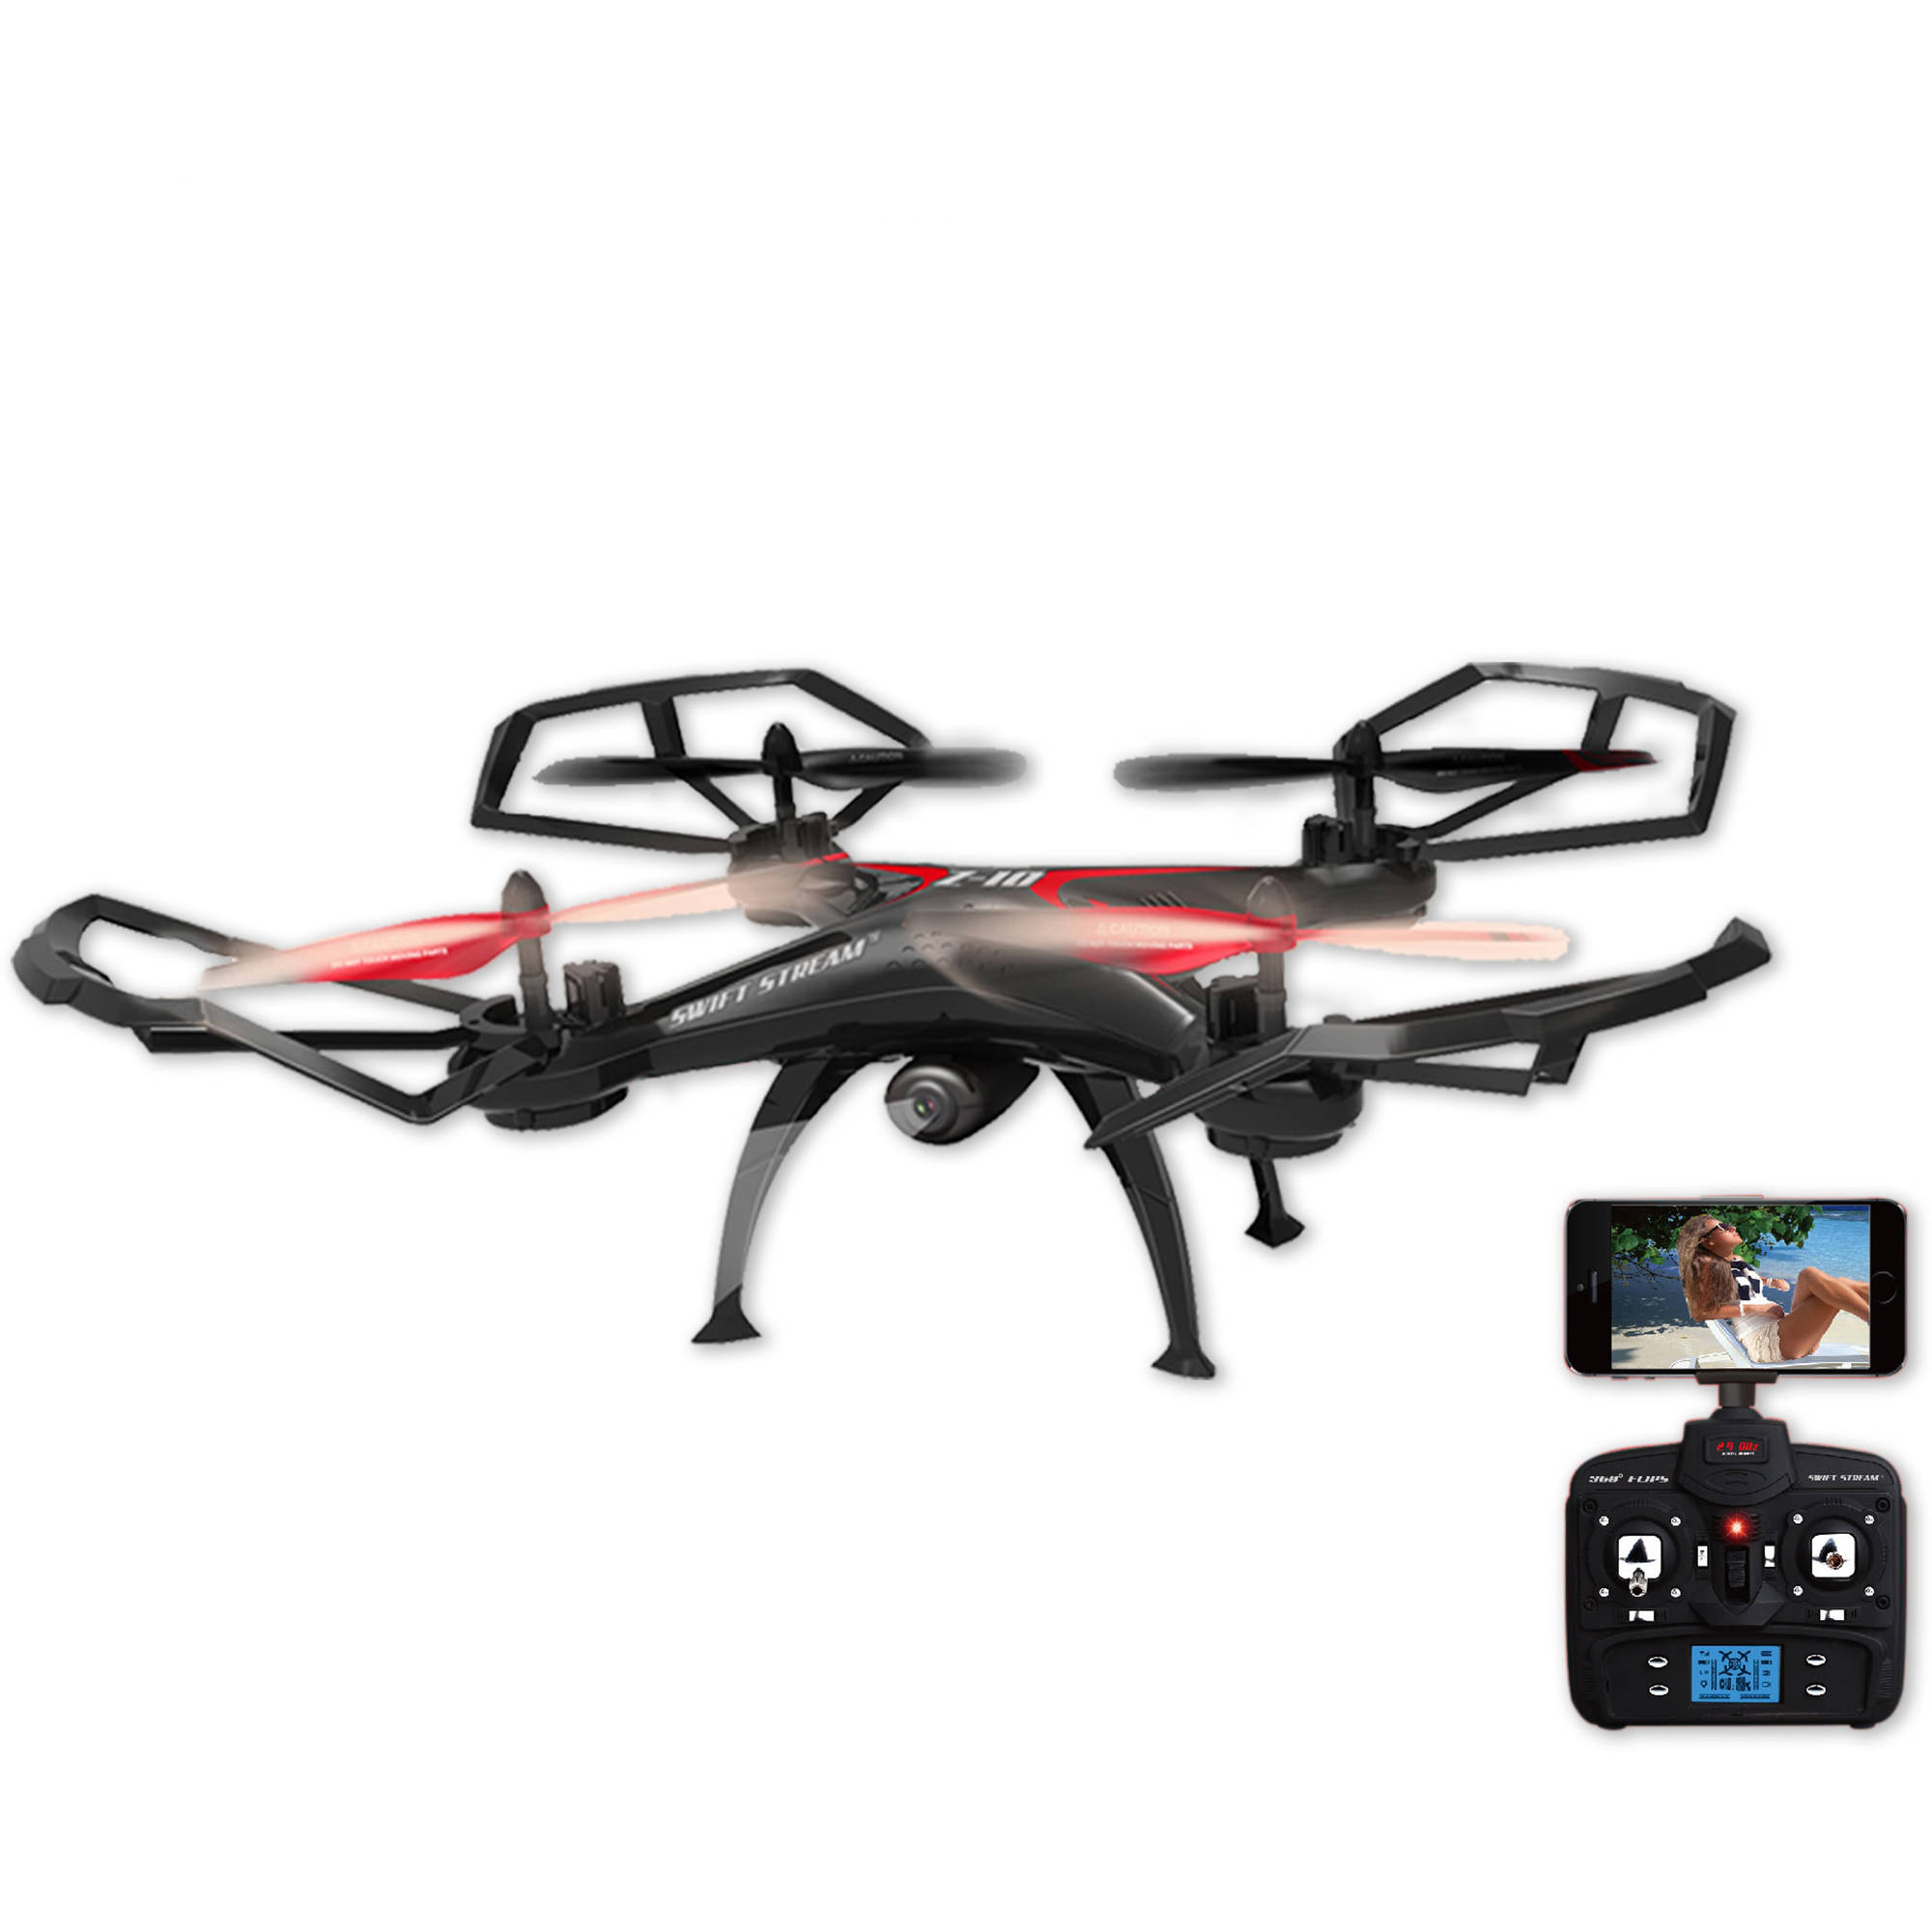 Swift Stream Z 10 Large 19in Hobby Grade Remote Control